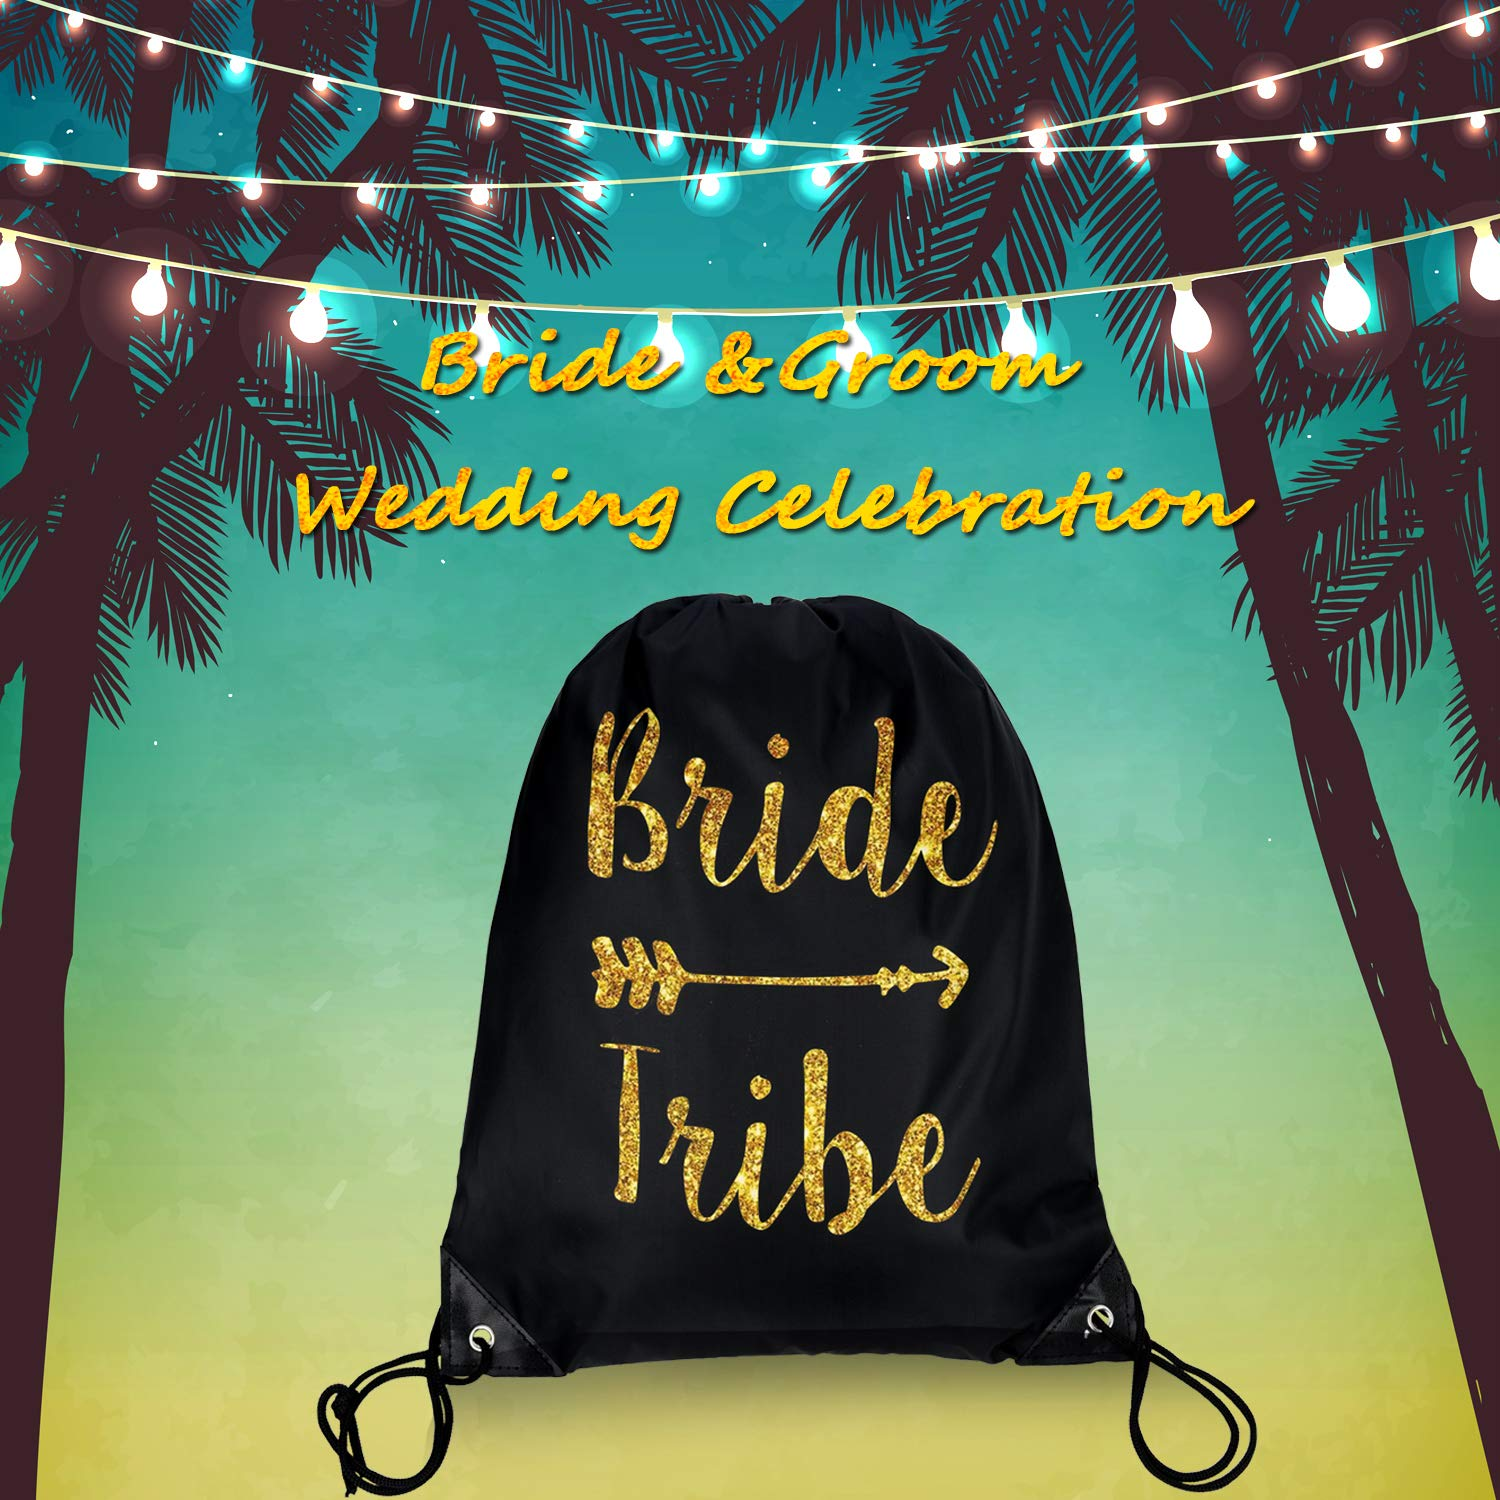 12 Pieces Bride and Bride Tribe Drawstring Bags Wedding Drawstring Gift Bag Bridal Party Favor Bags for Bridesmaids Bridal Party Bridal Shower, 16.5 x 13.4 inch (Black) by Maitys (Image #6)